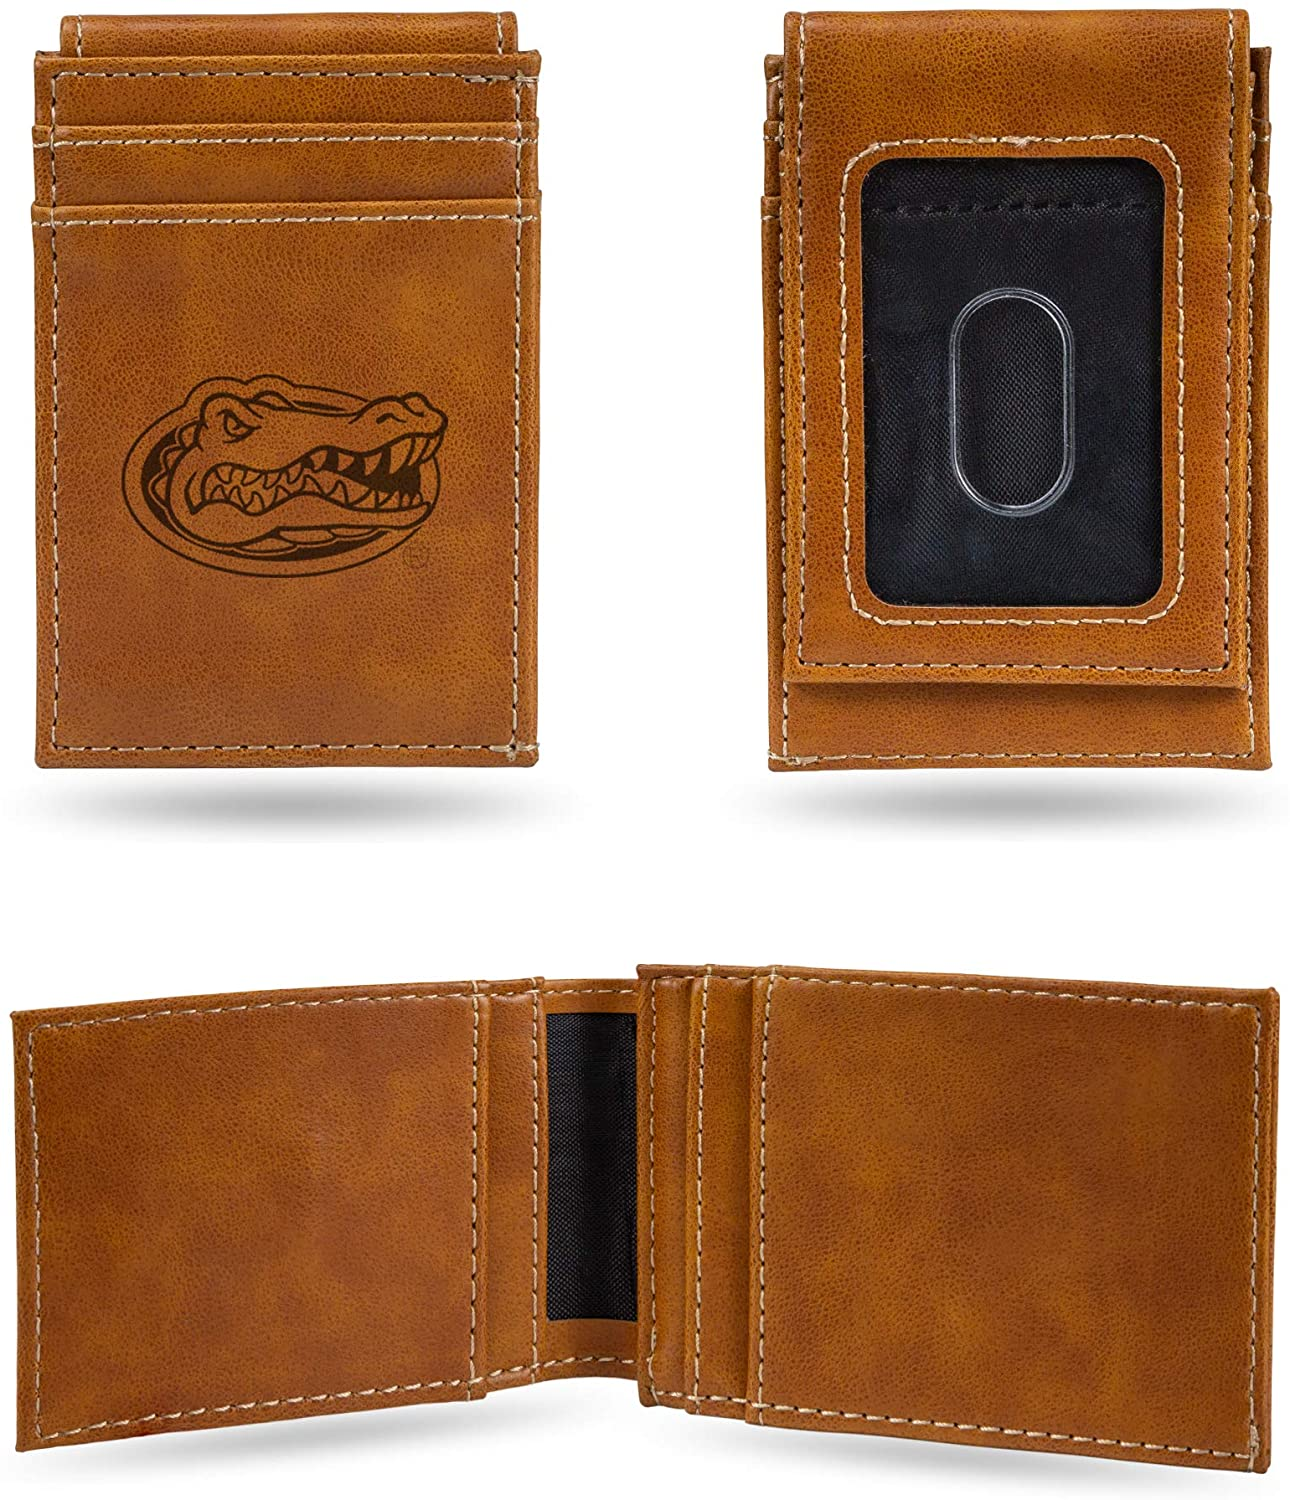 NCAA Rico Industries Laser Engraved Front Pocket Wallet, Florida Gators